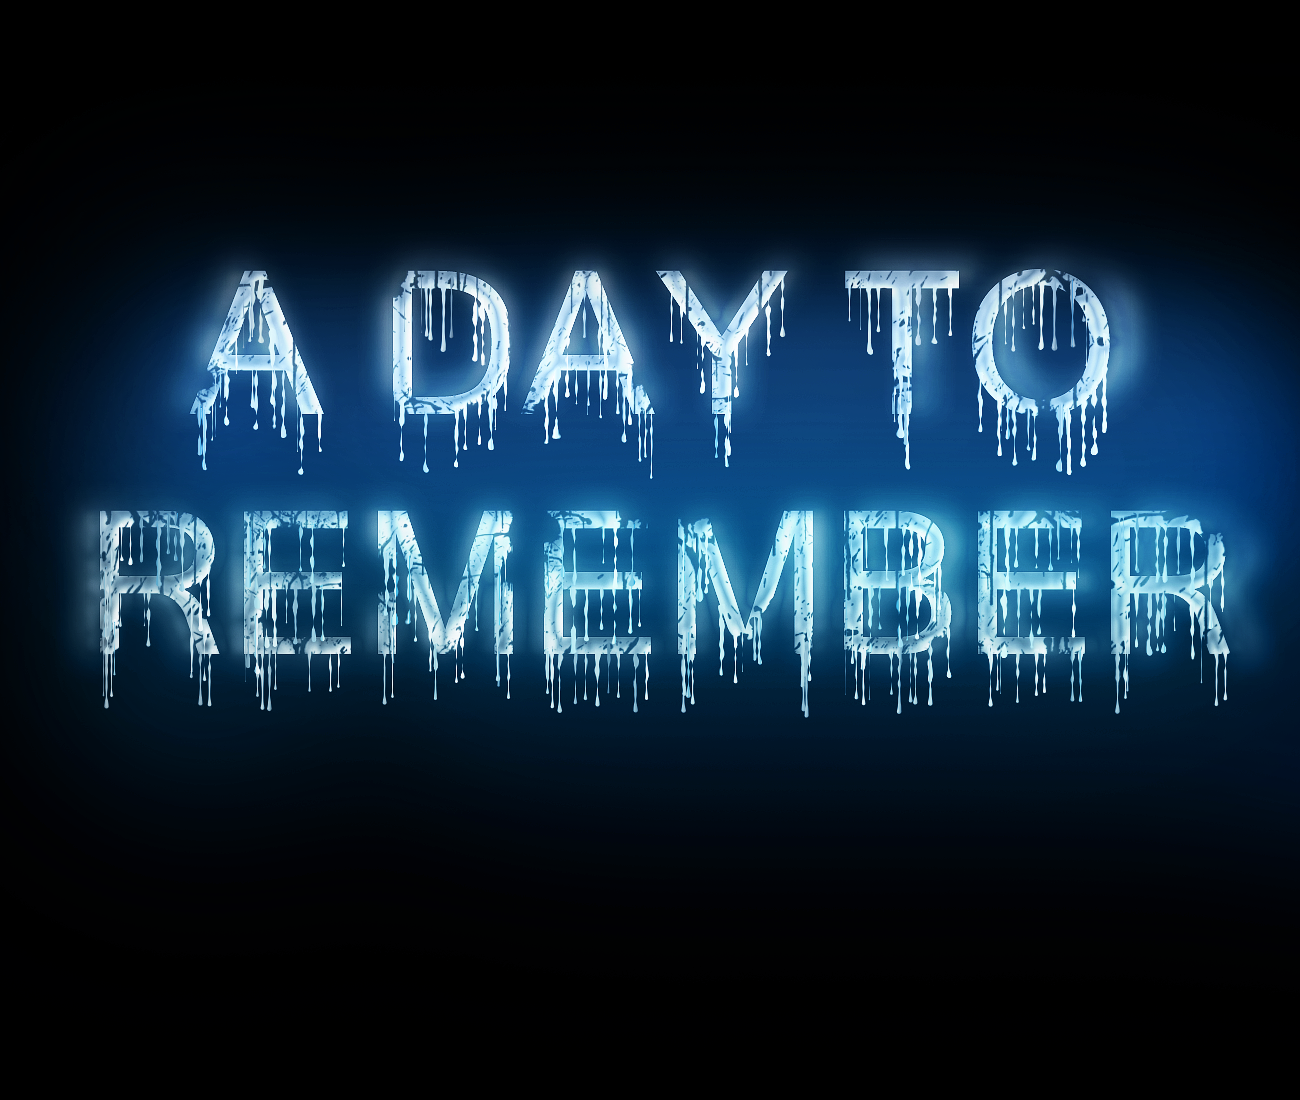 day to remember wallpaper 2 by pato92 customization wallpaper 1300x1100